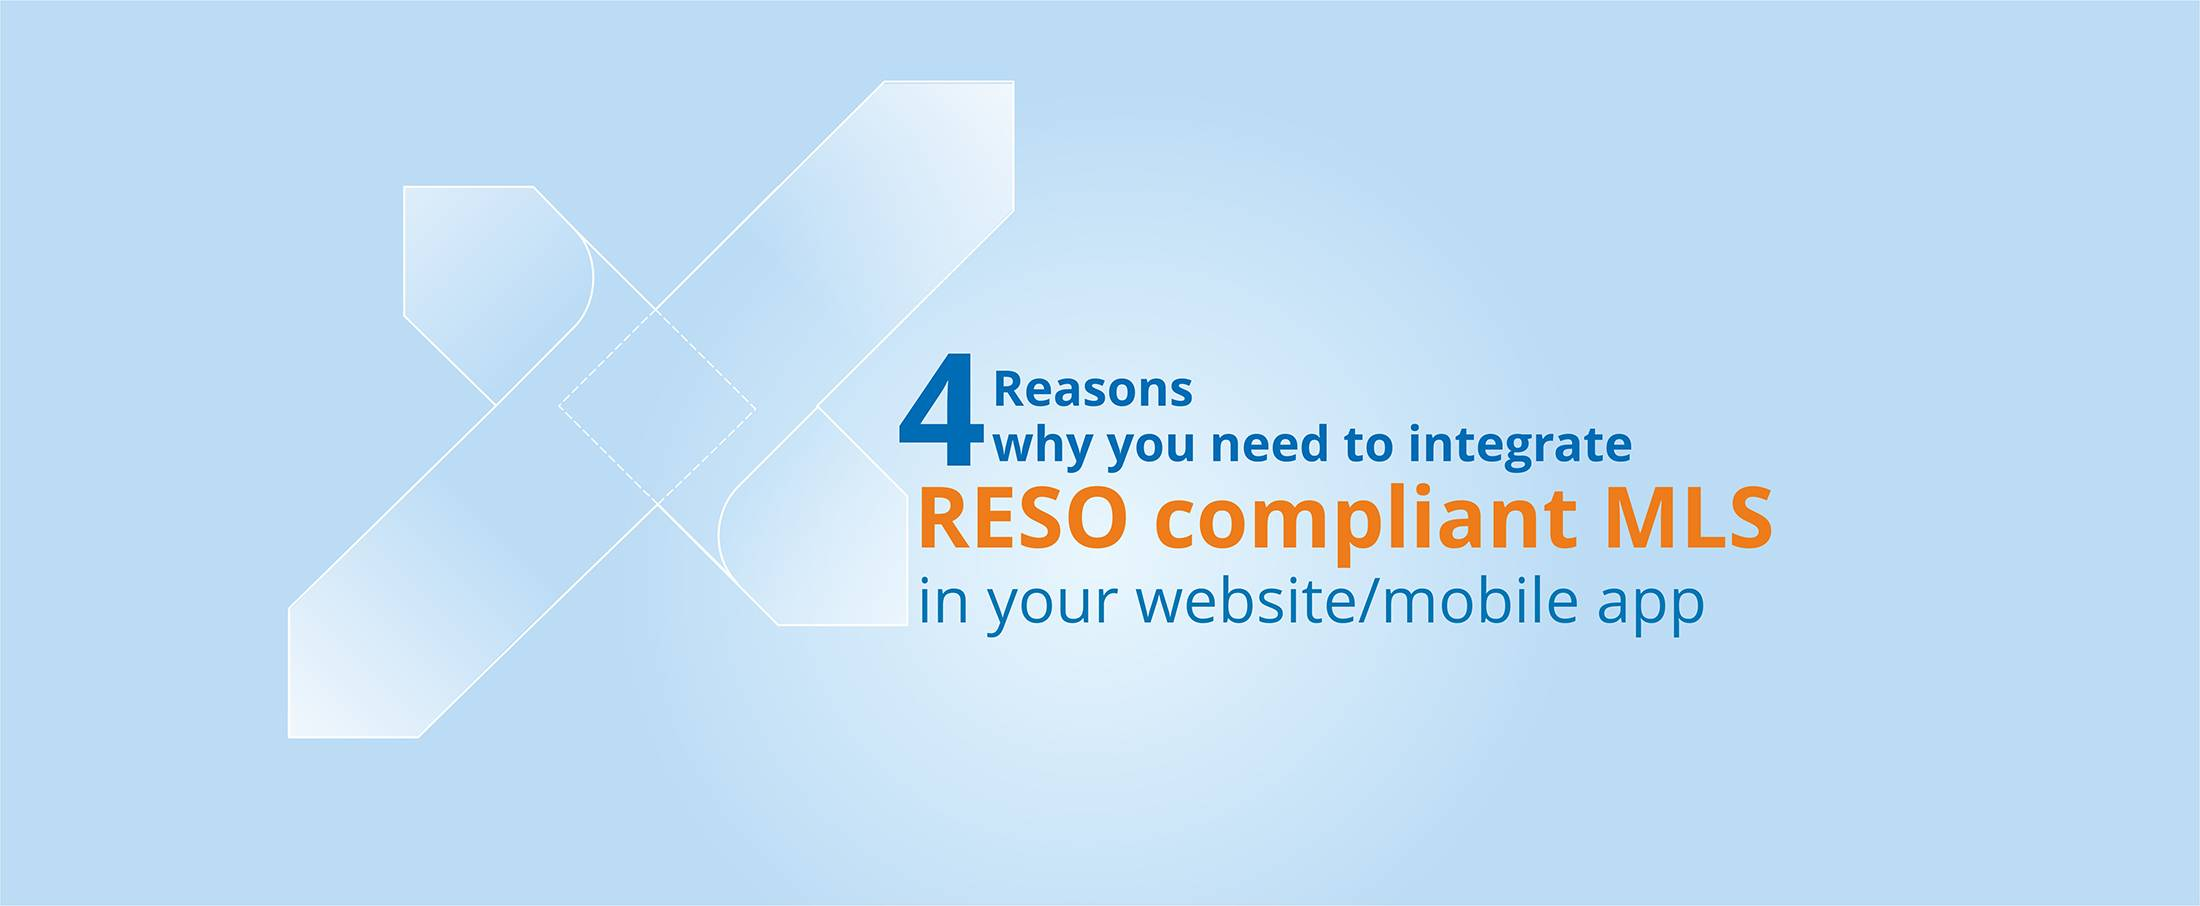 4 Reasons why you need to integrate RESO compliant MLS in your website/mobile app